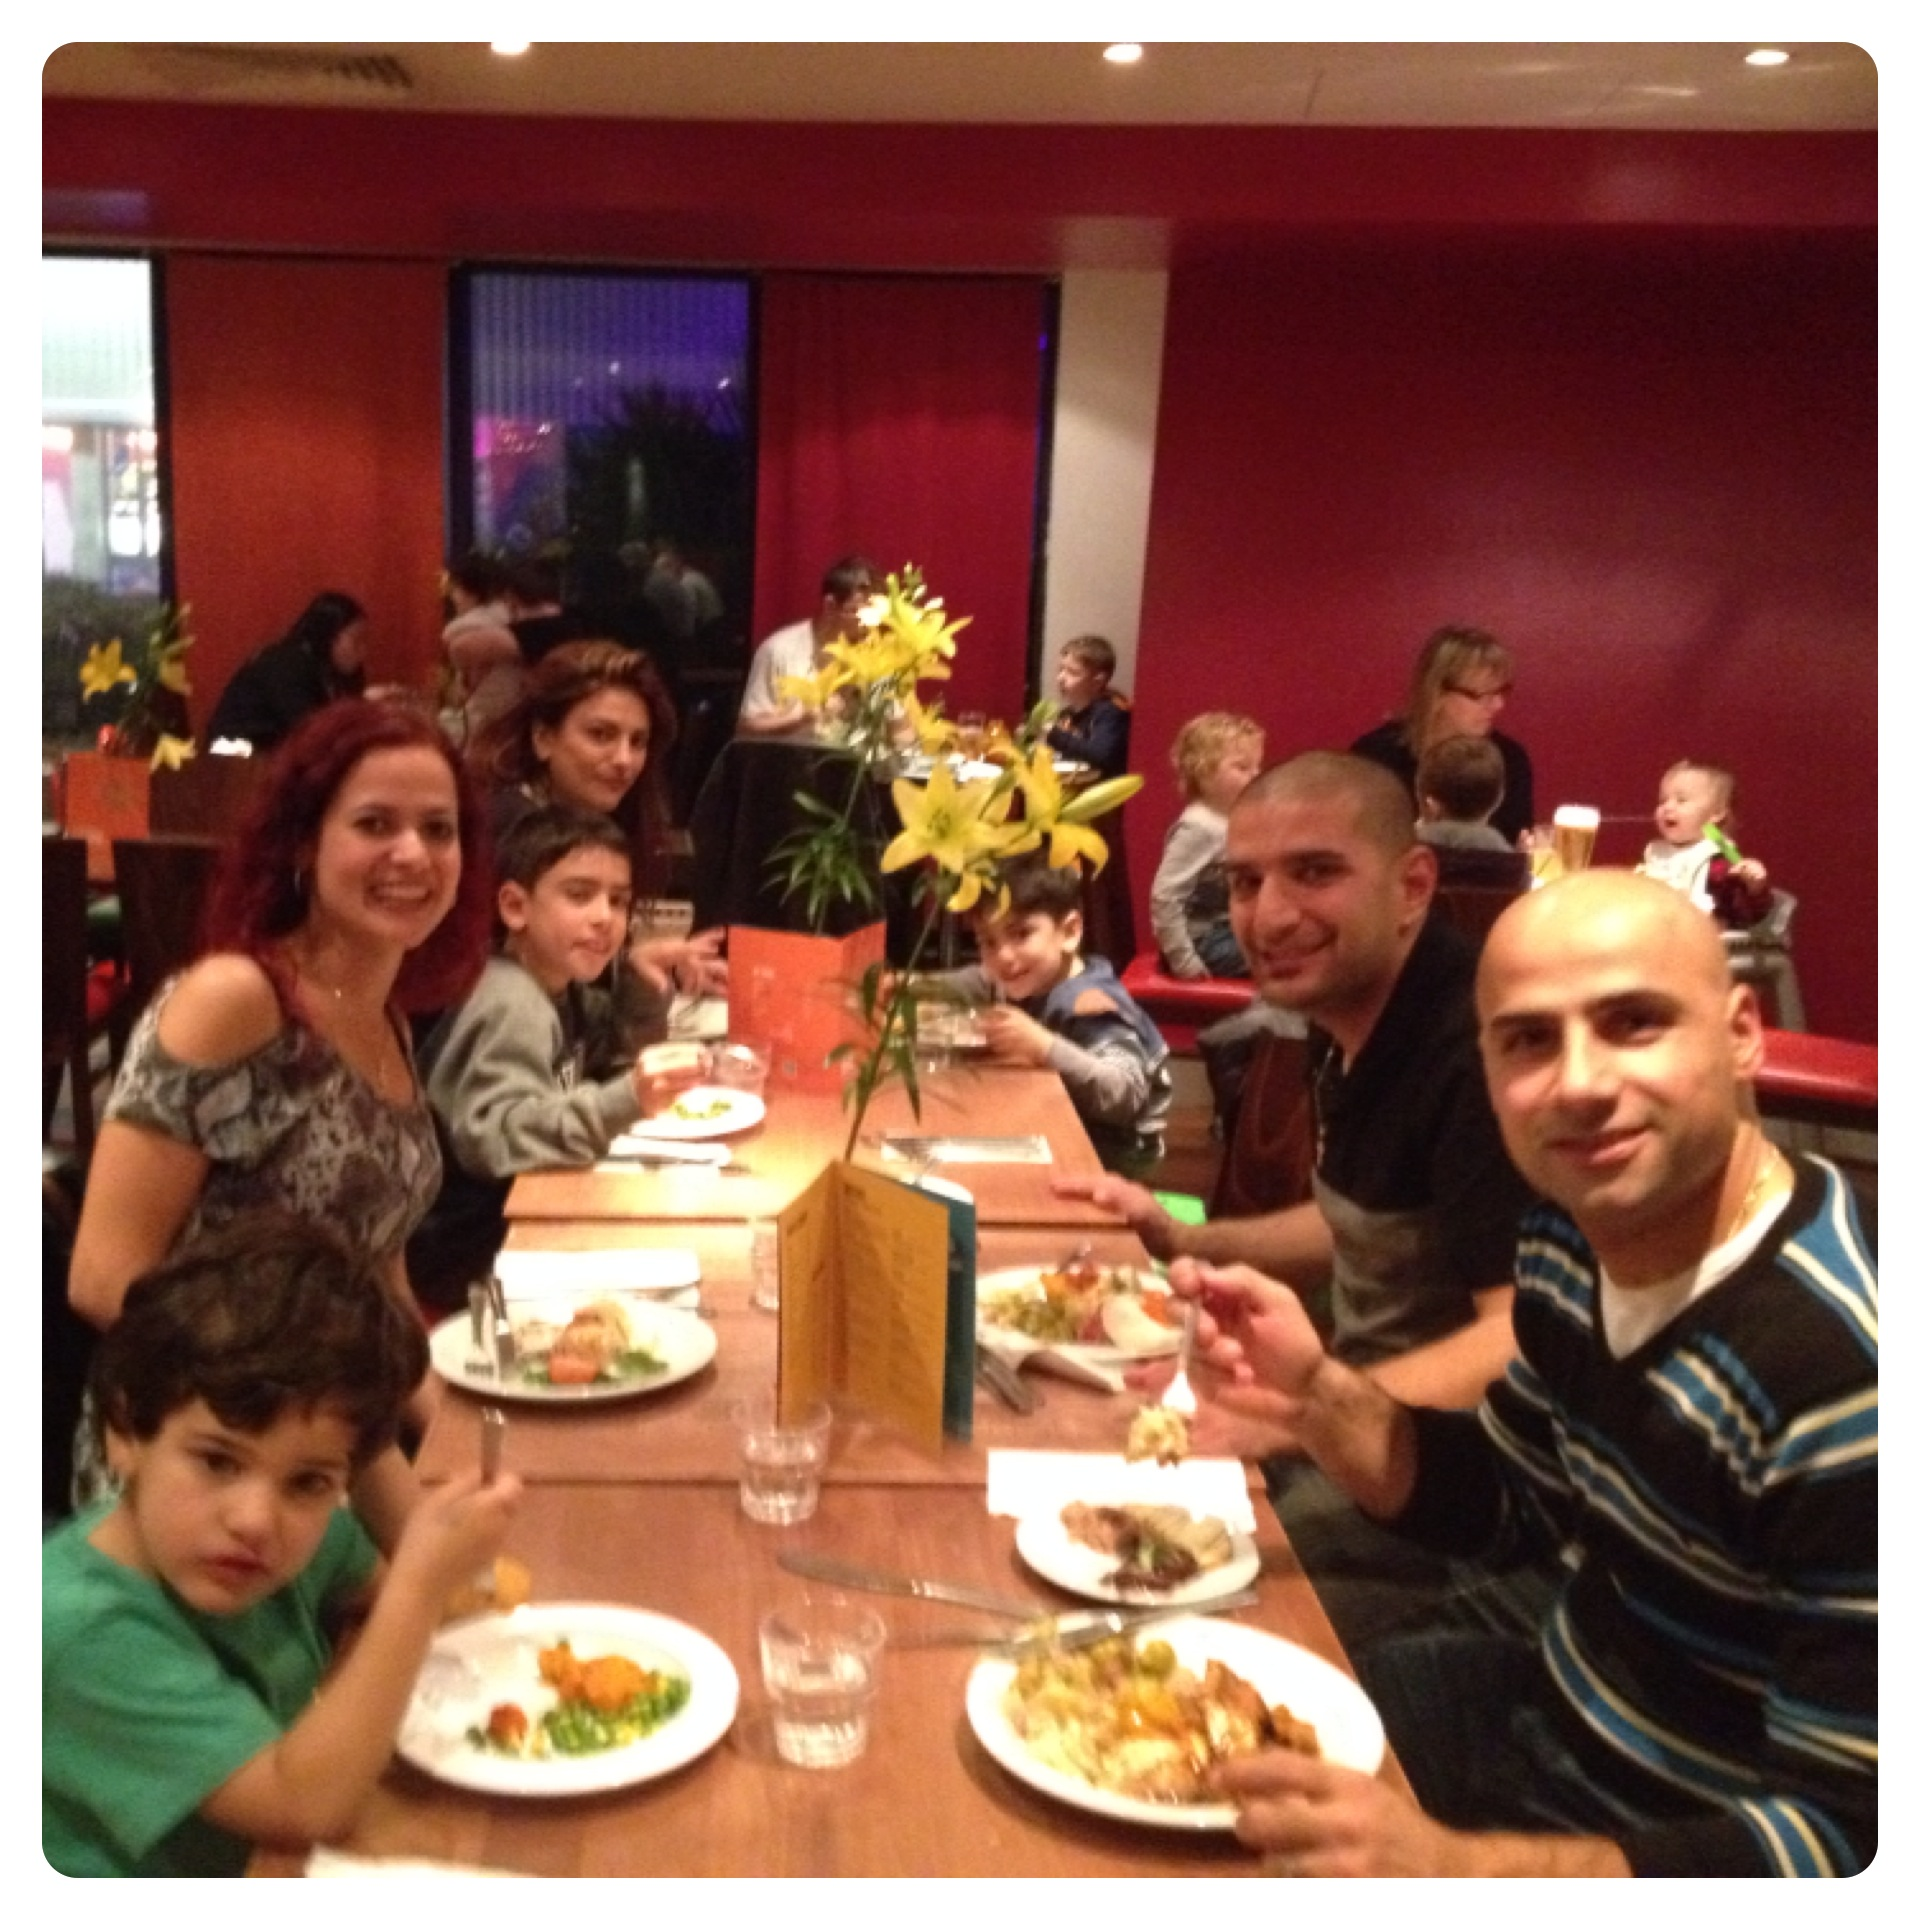 Family Meal at South Coast Restaurant